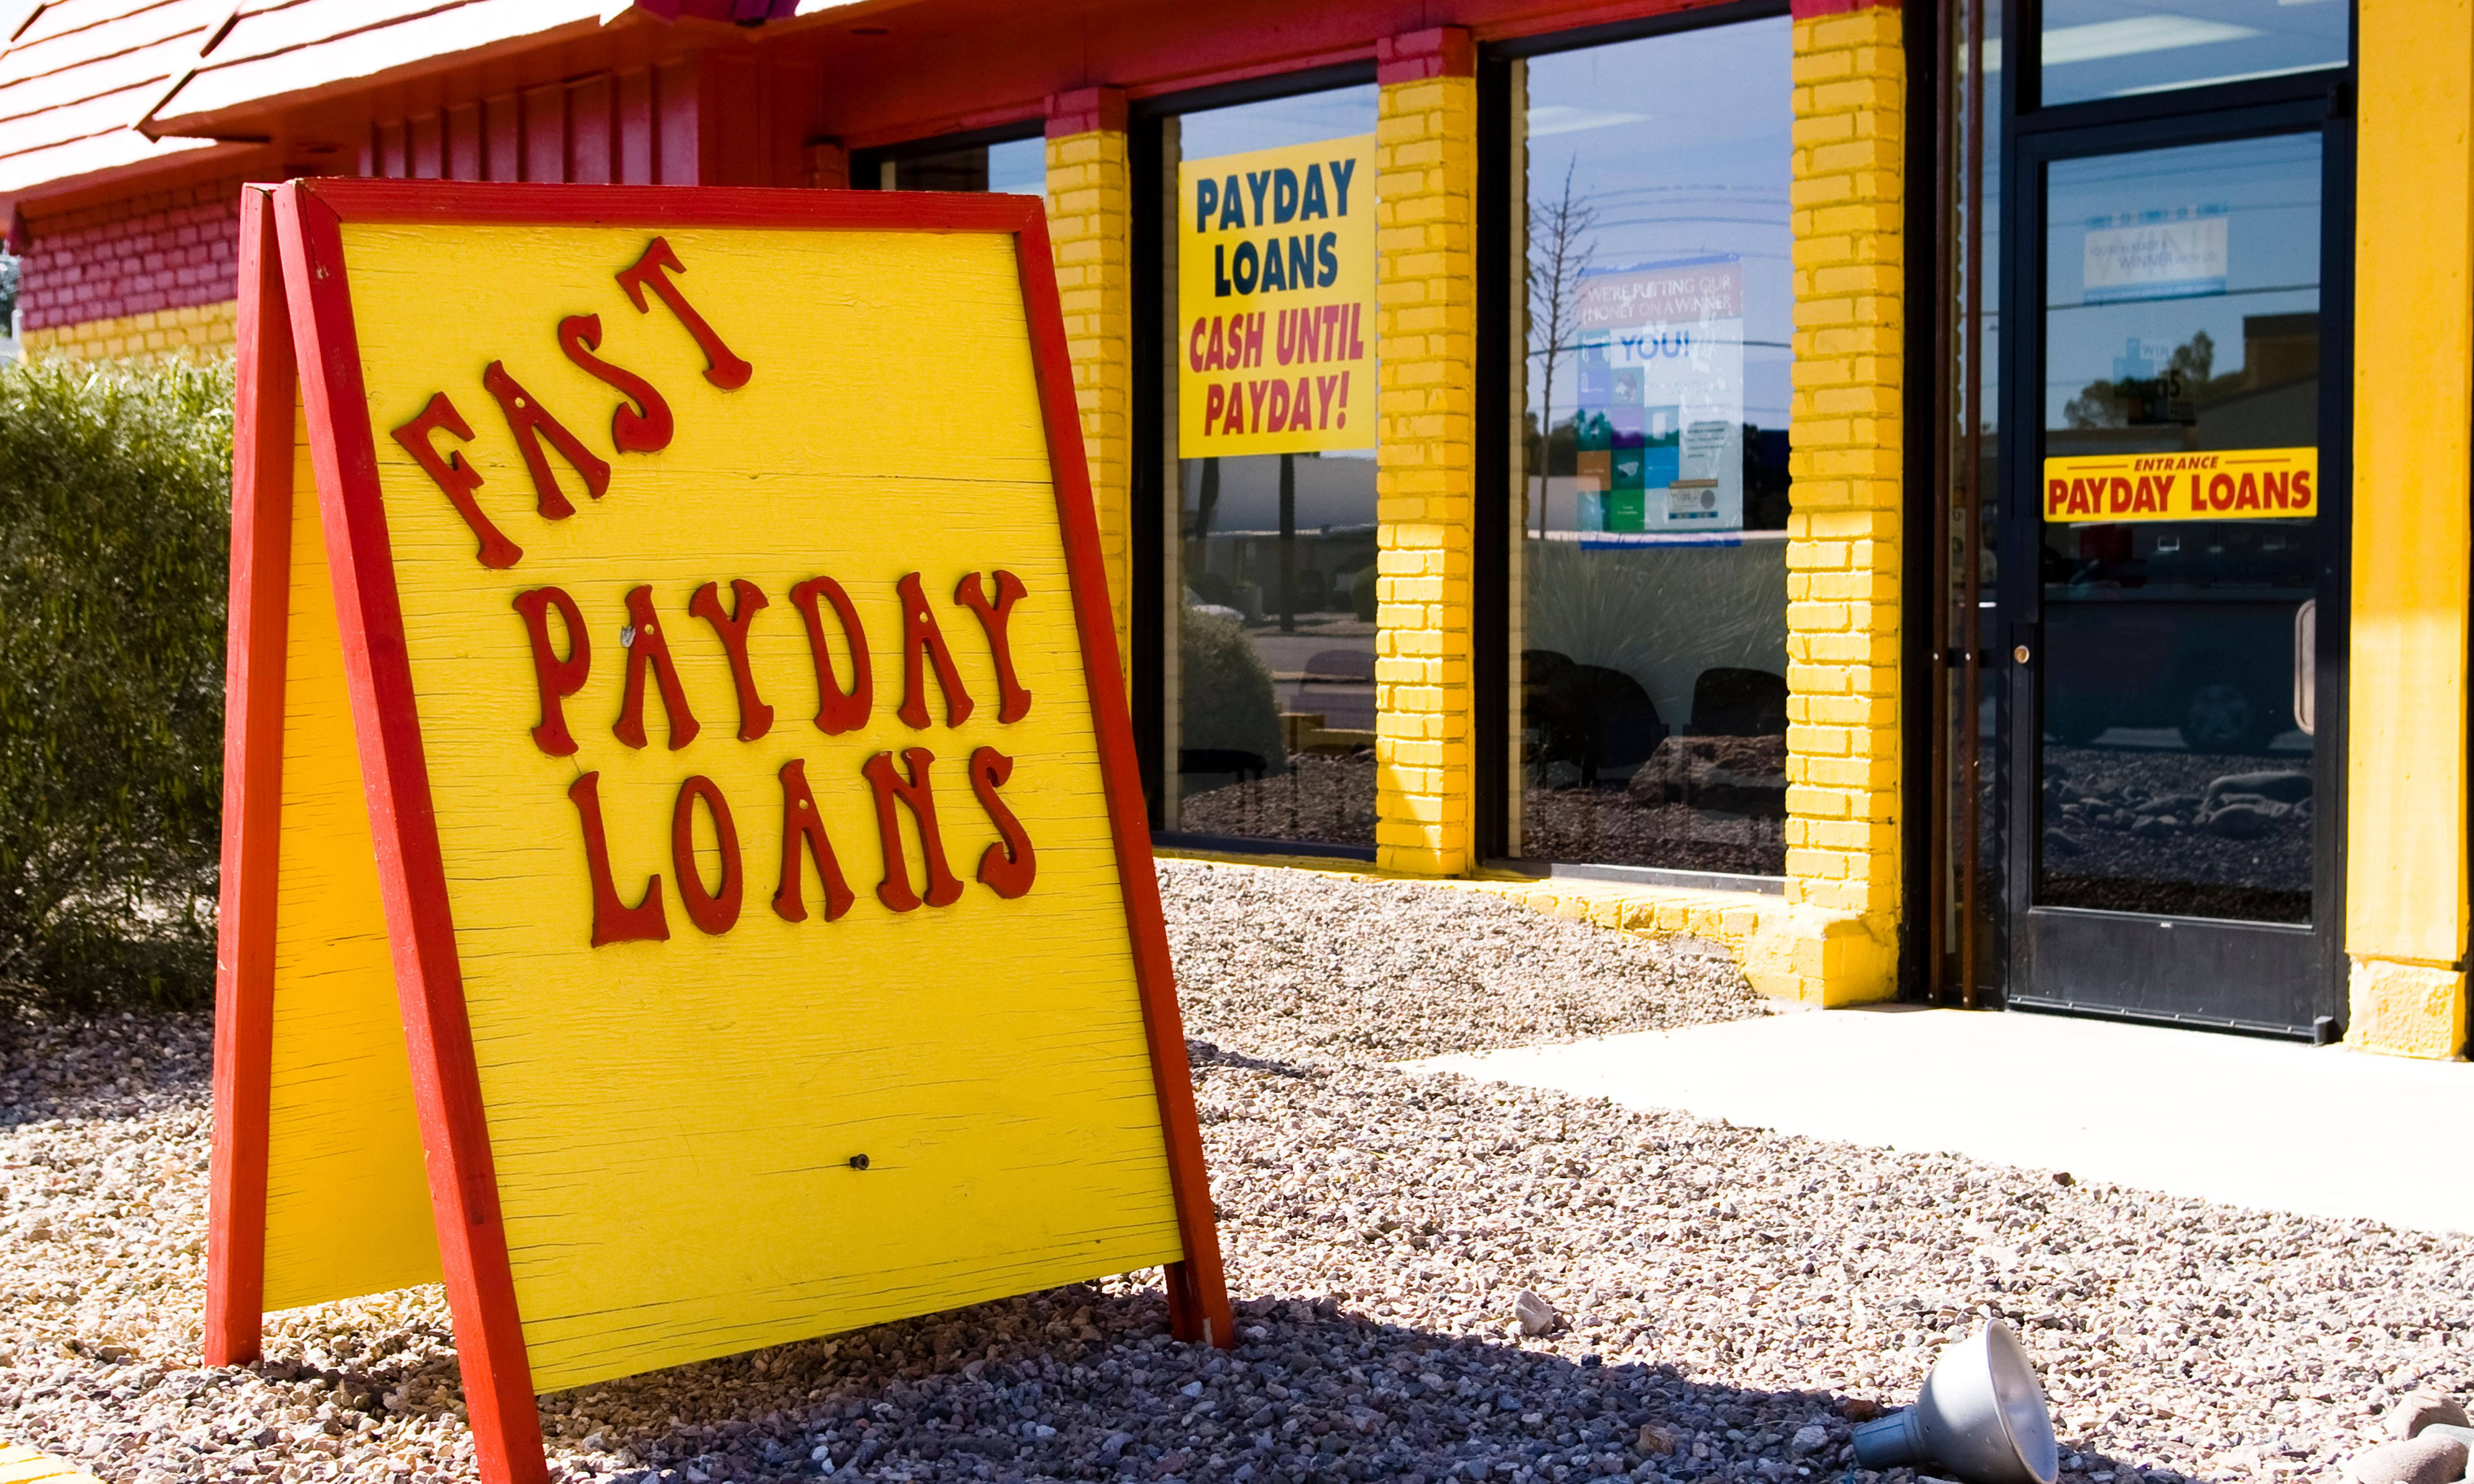 Dole recipient paid 884% interest: inquiry demands payday lending shake-up